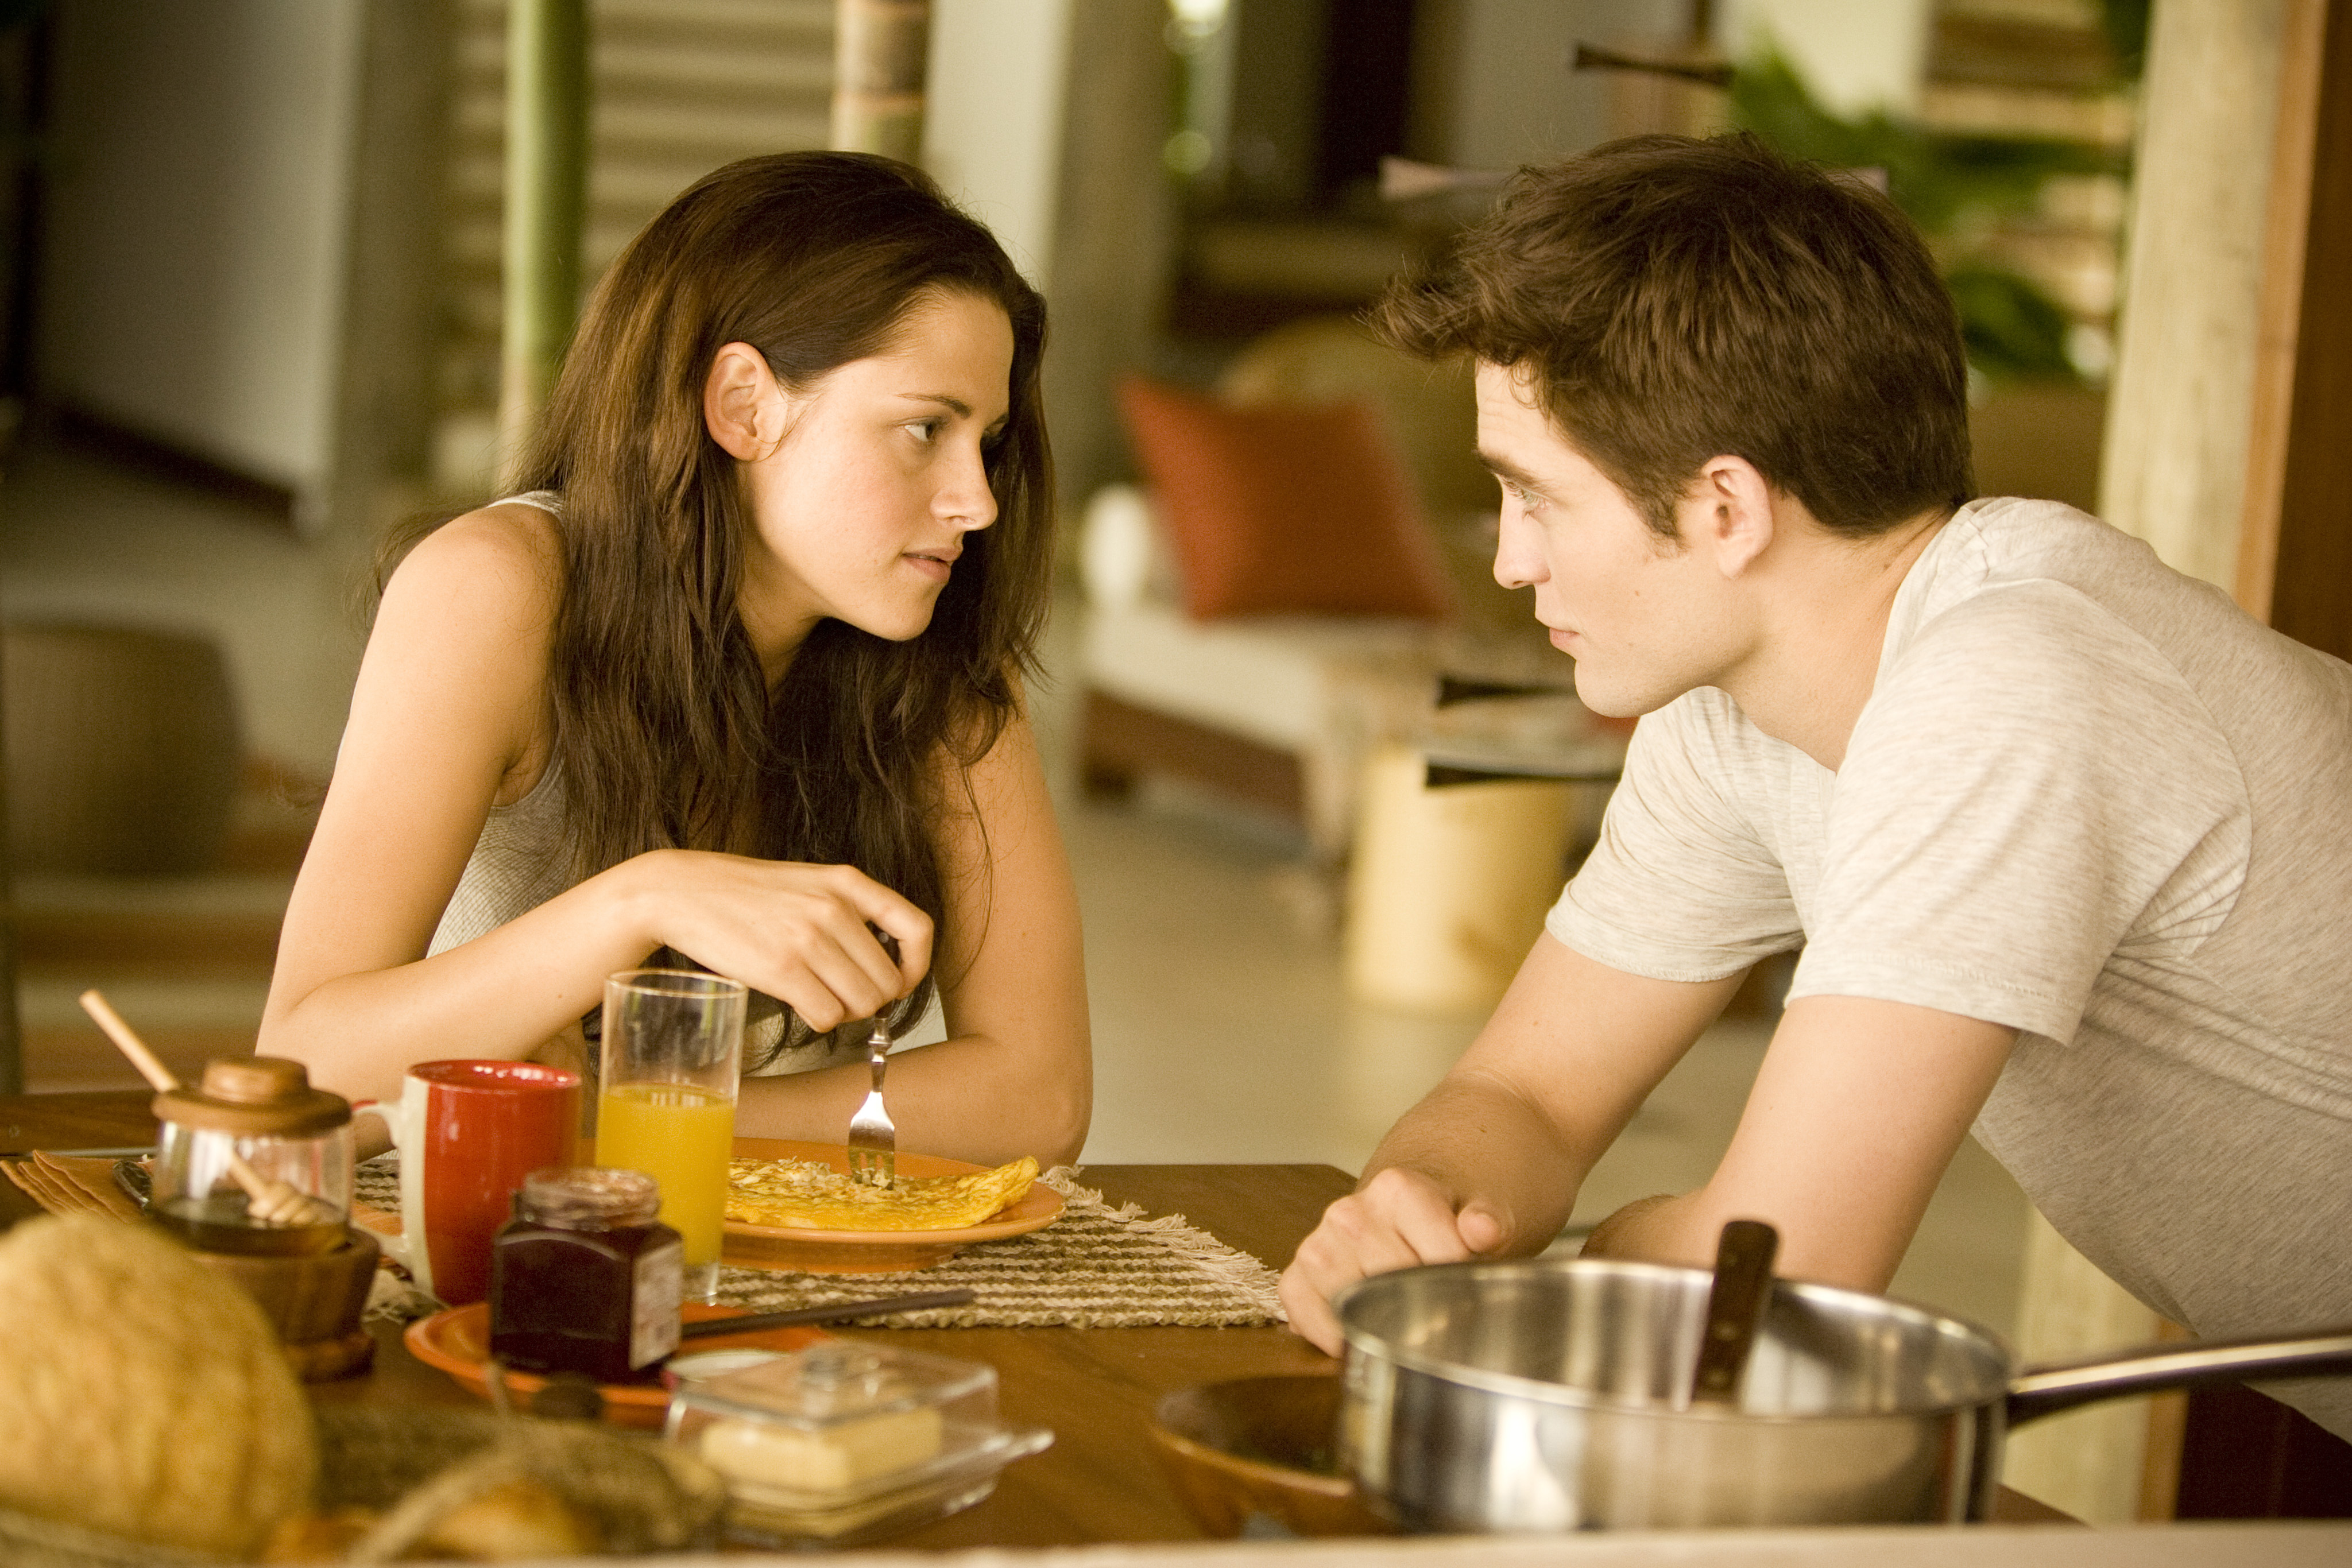 HQ Versions of EW &amp; People Magazine &#8216;Breaking Dawn&#8217; Stills!